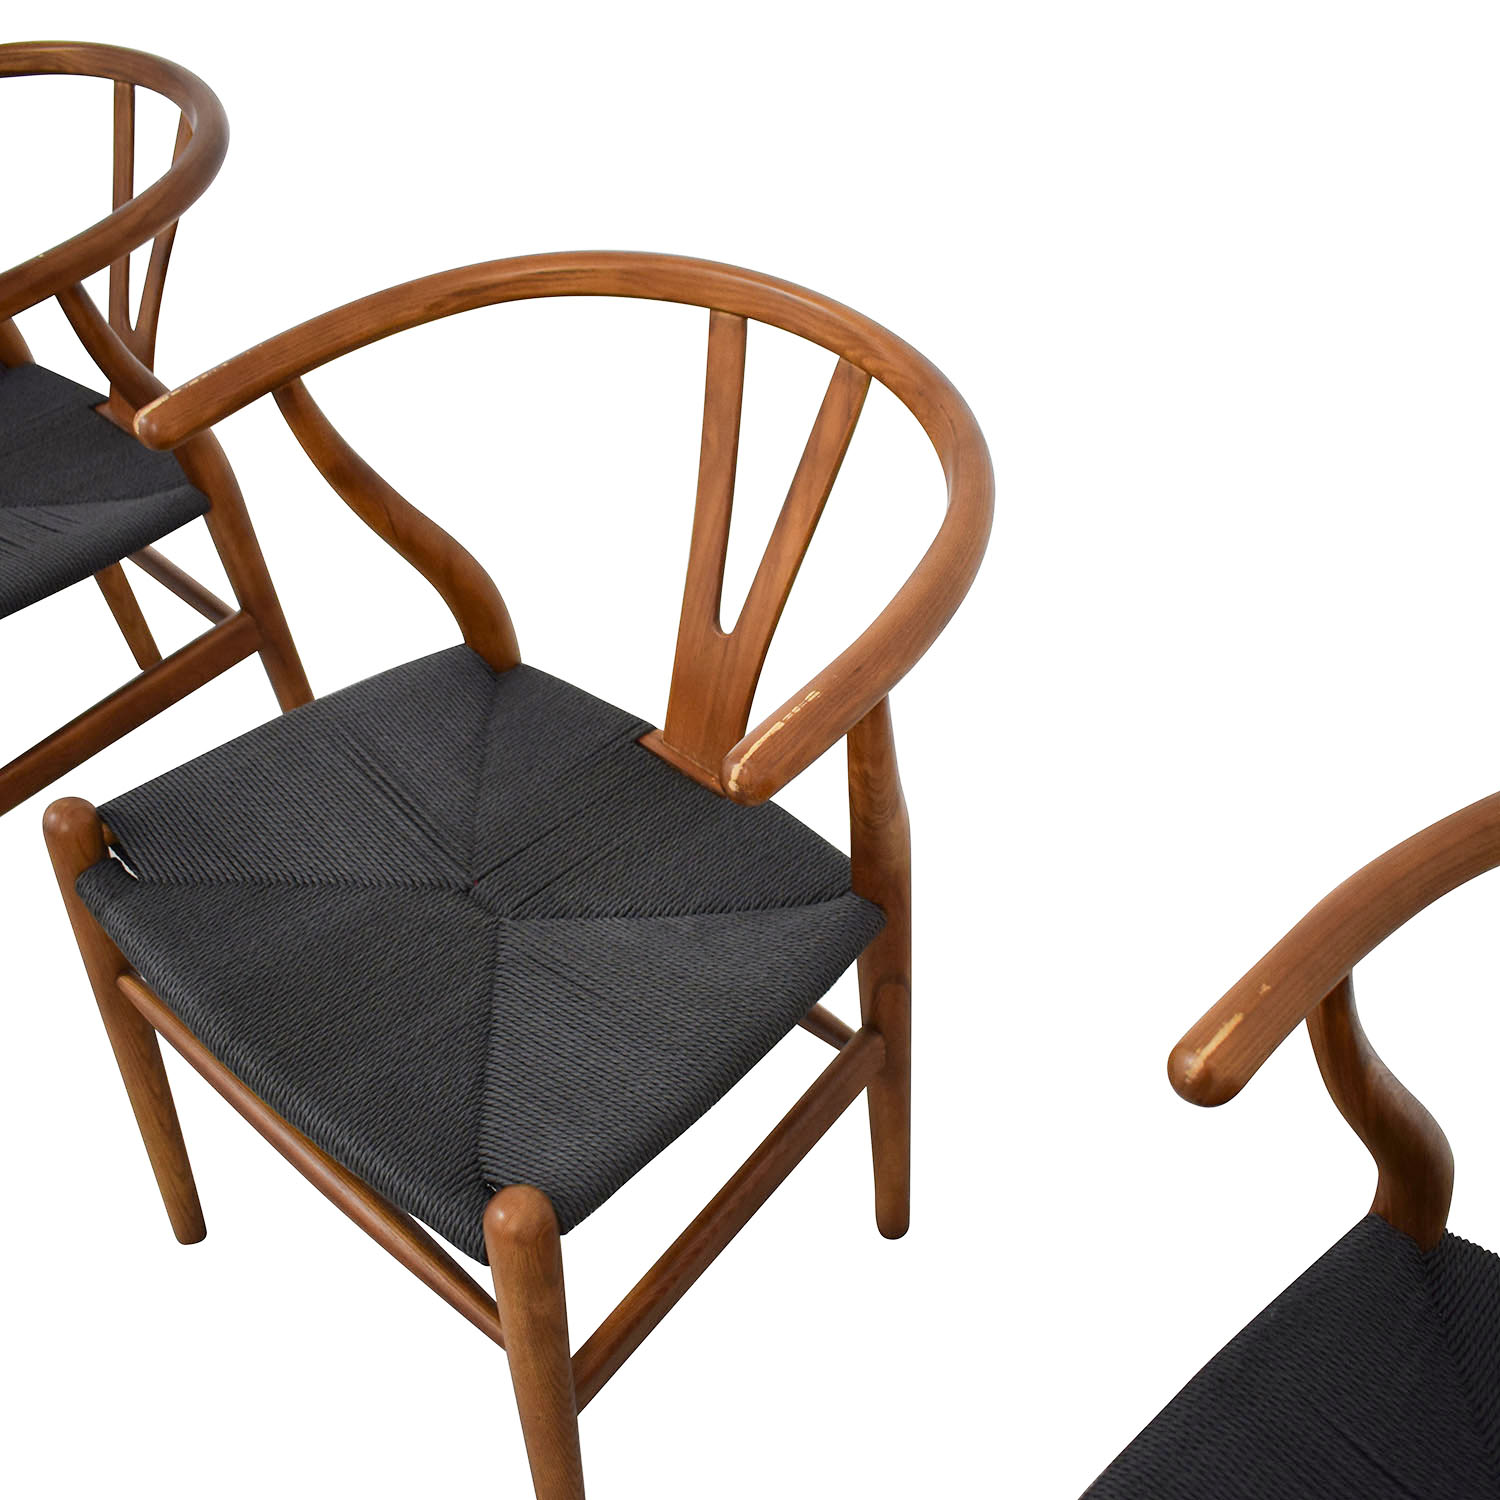 Rove Concepts Rove Concepts Wishbone Chairs on sale